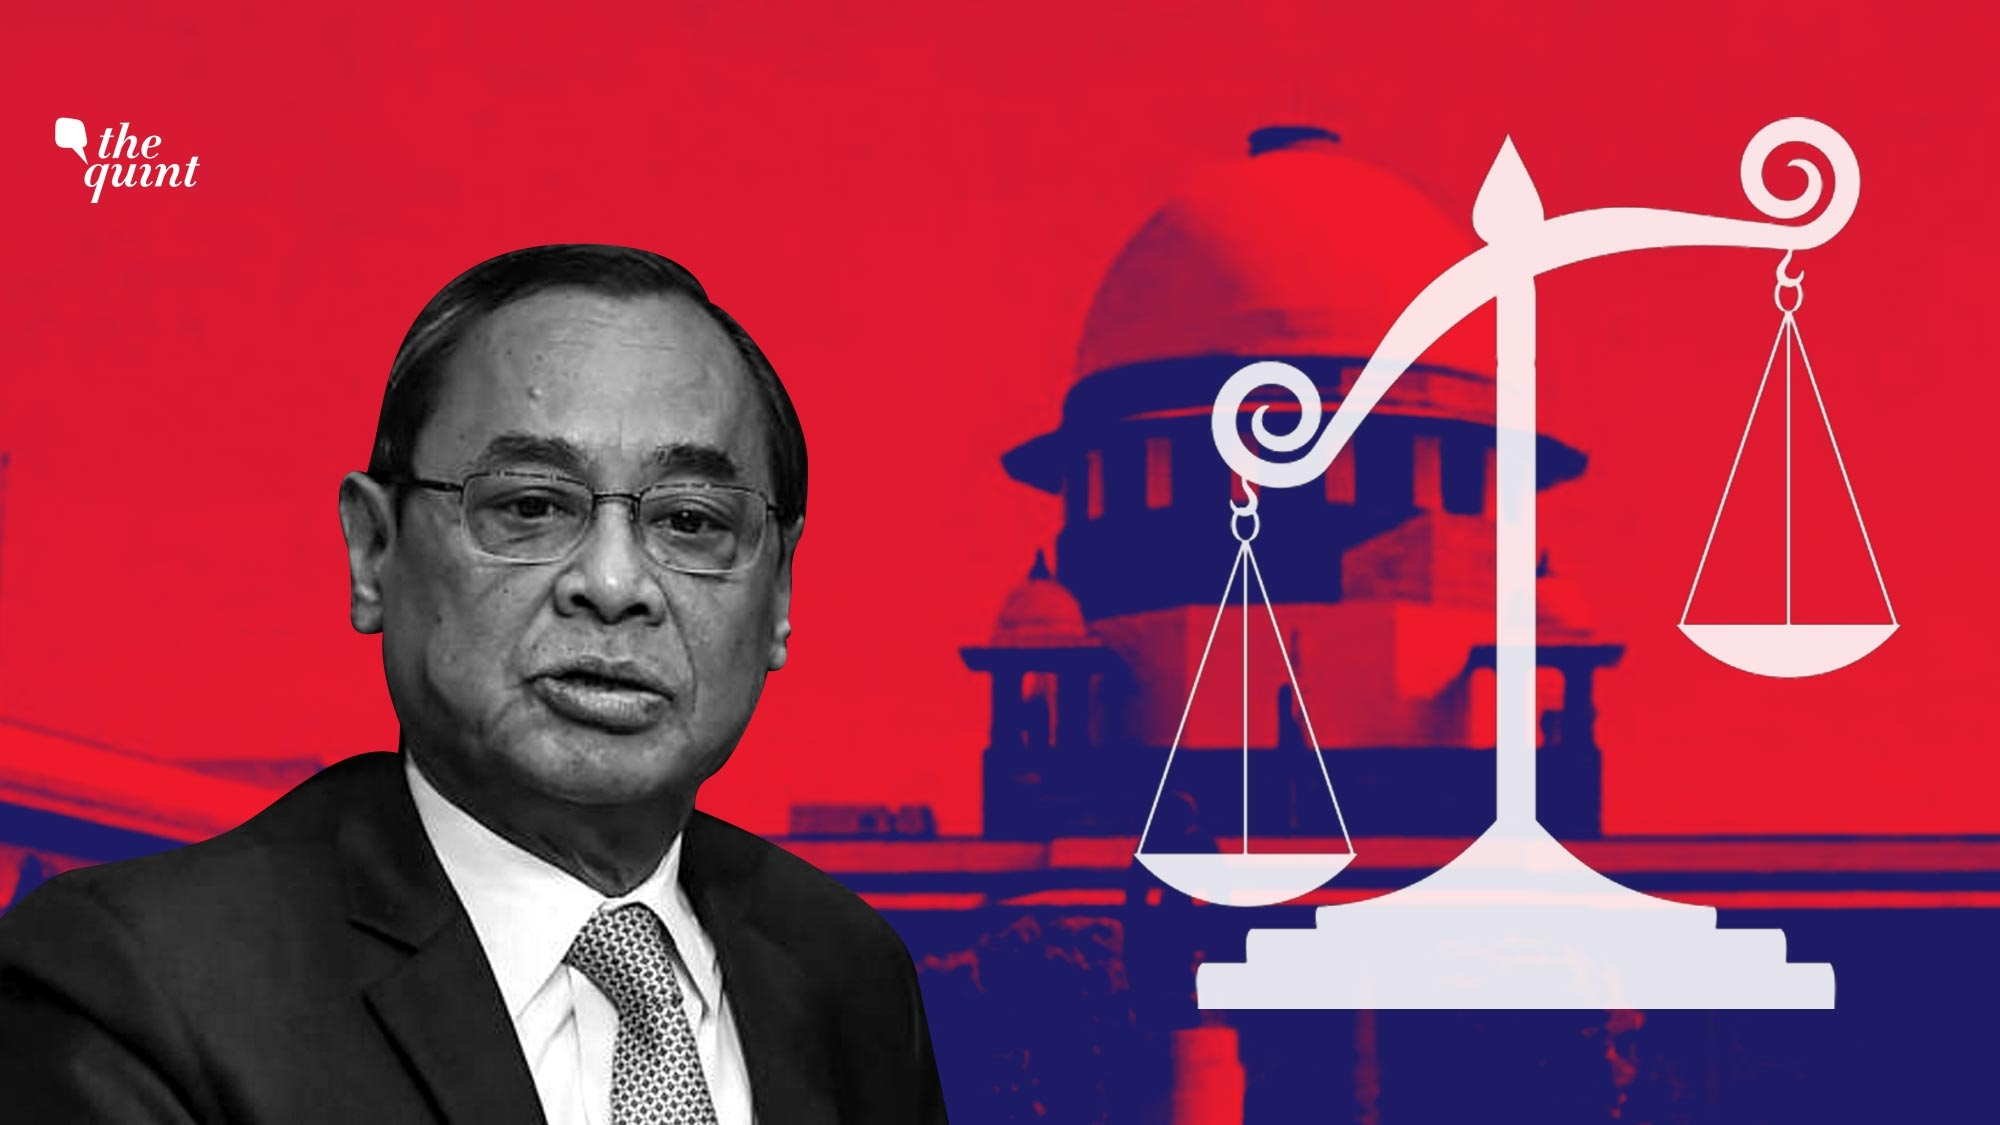 CJI Gogoi Was to Be 'A New Hope', That's Not How Things Panned Out